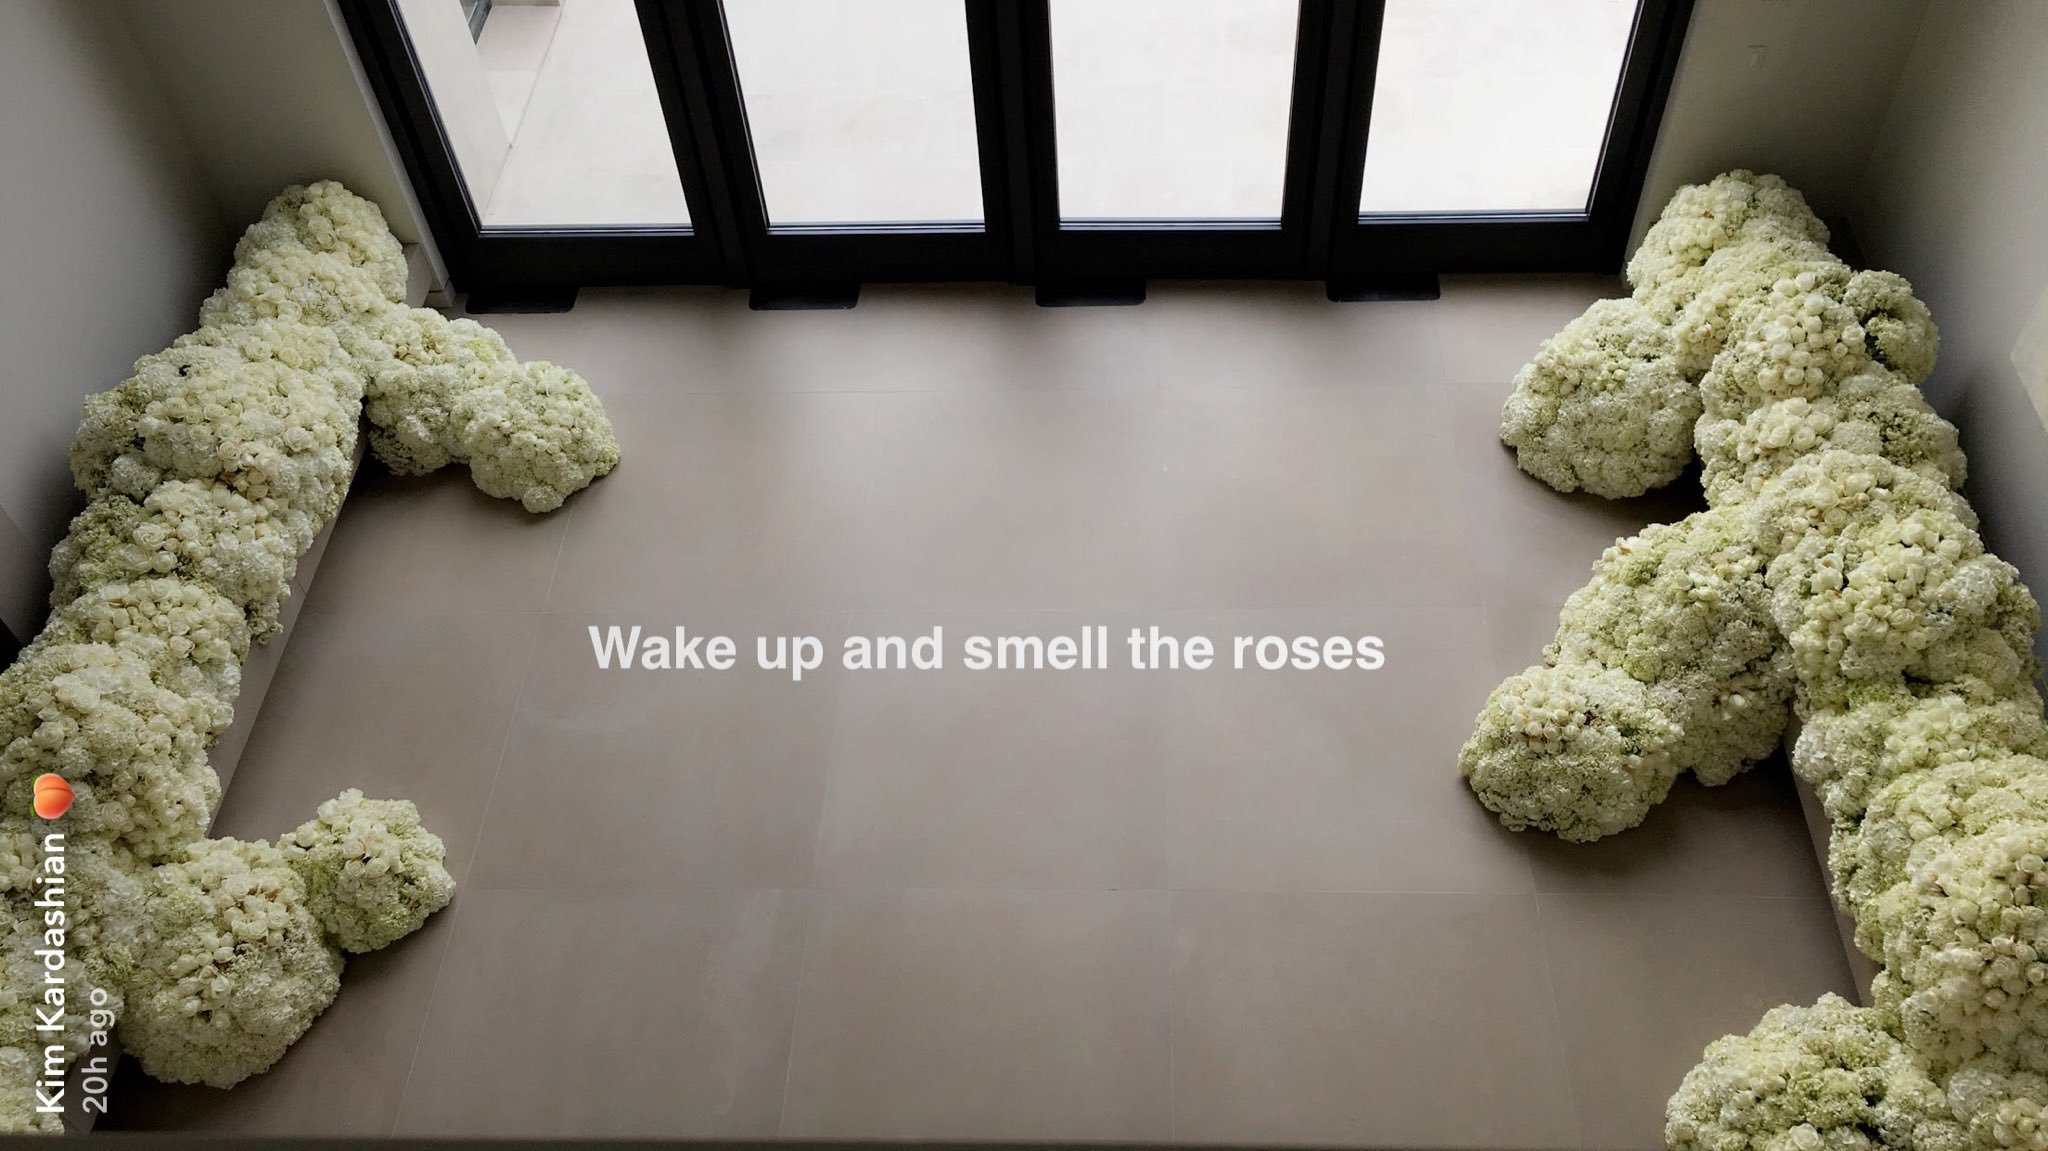 More void from the Kardashians. Elaborate flower installation.